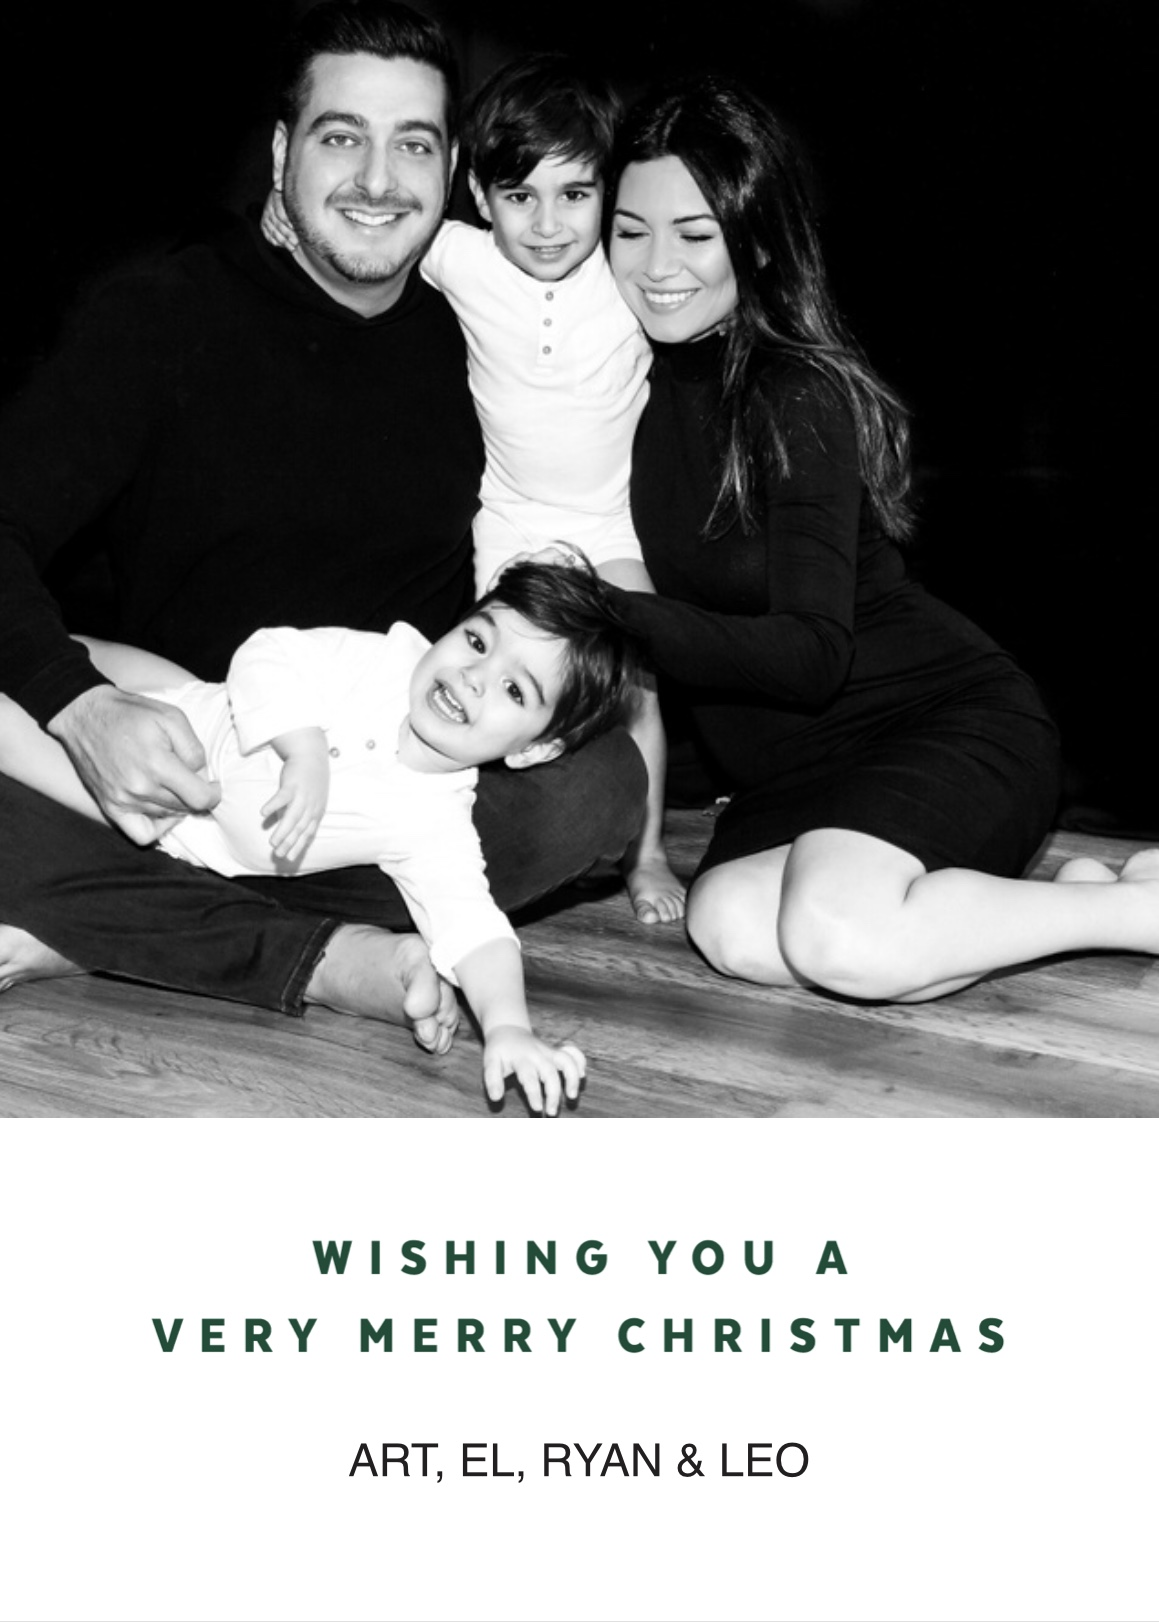 Our official 2018 holiday card